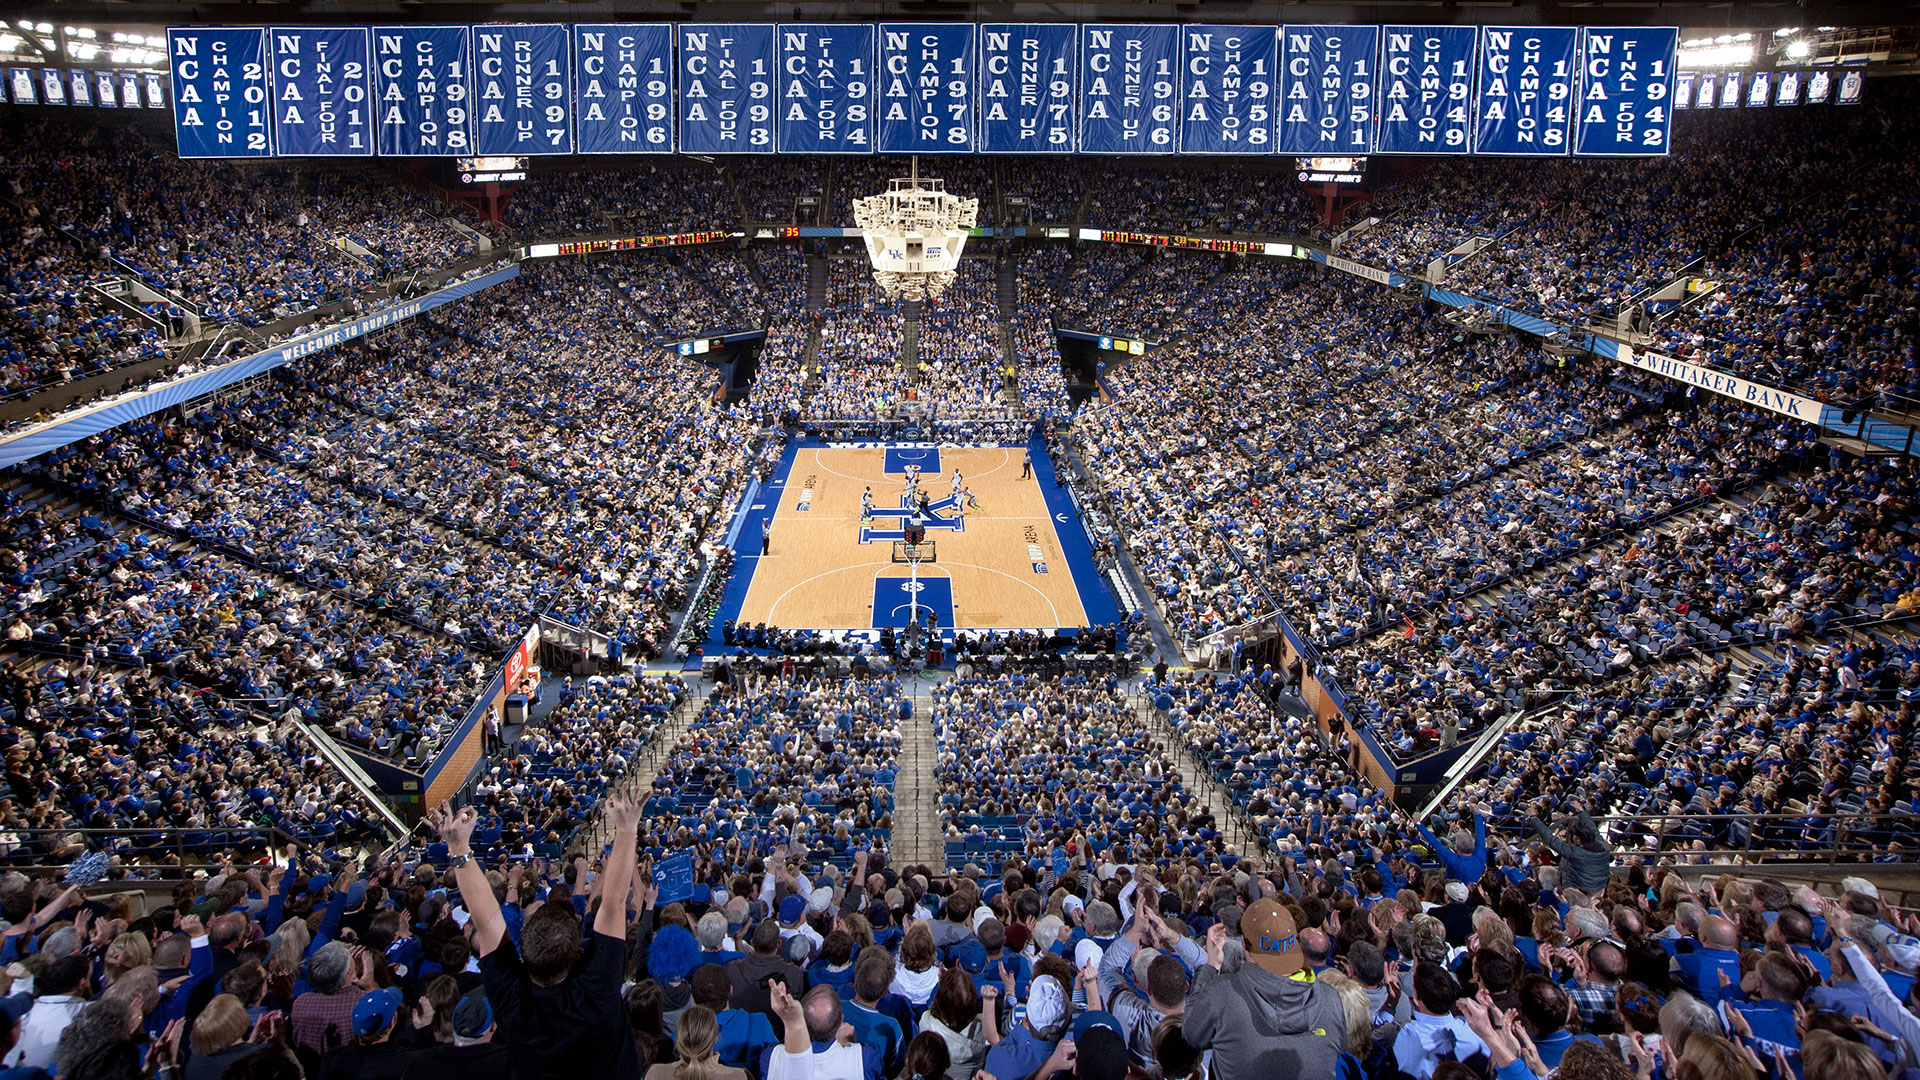 Rupp Arena Rafters Getting Painted Blue: The 9 Most Iconic Basketball Courts In America